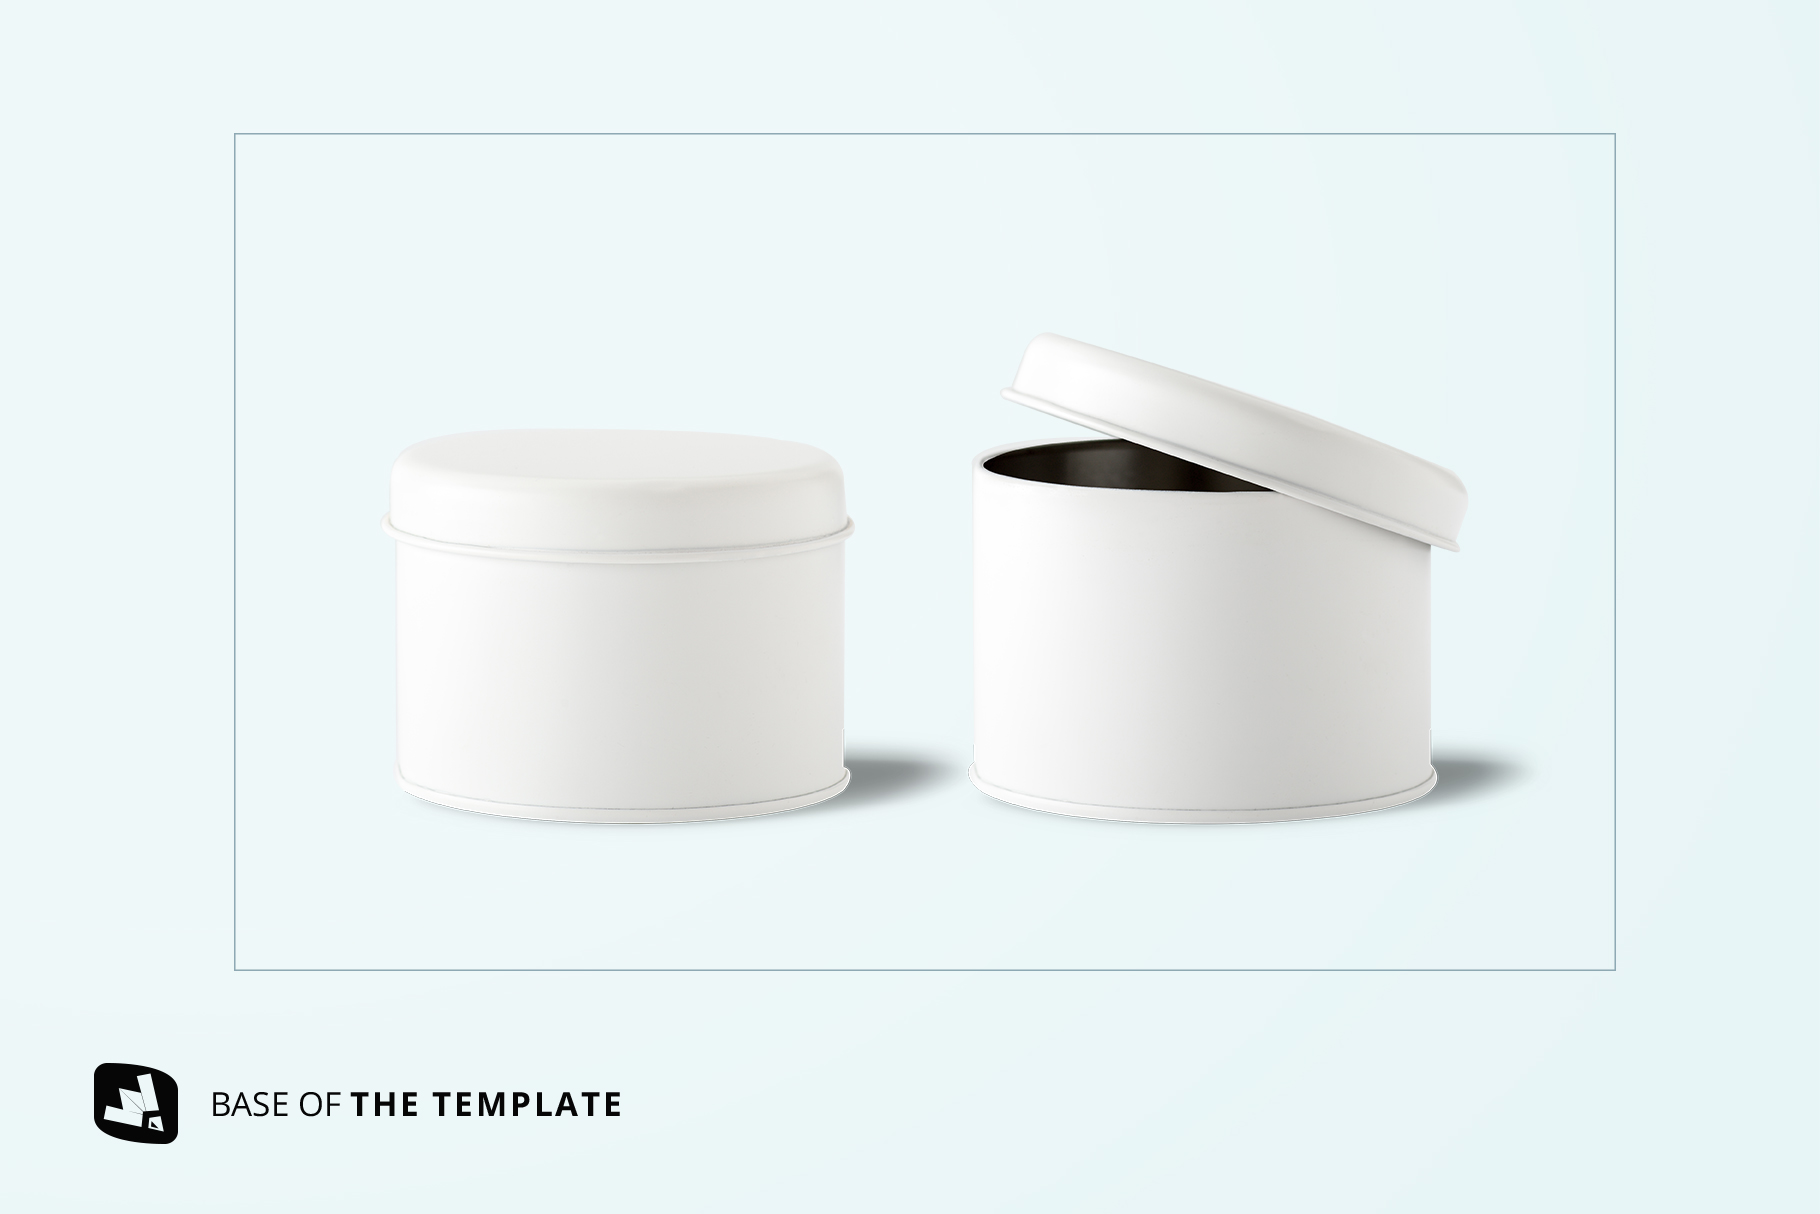 base image of the front view cylindrical container mockup